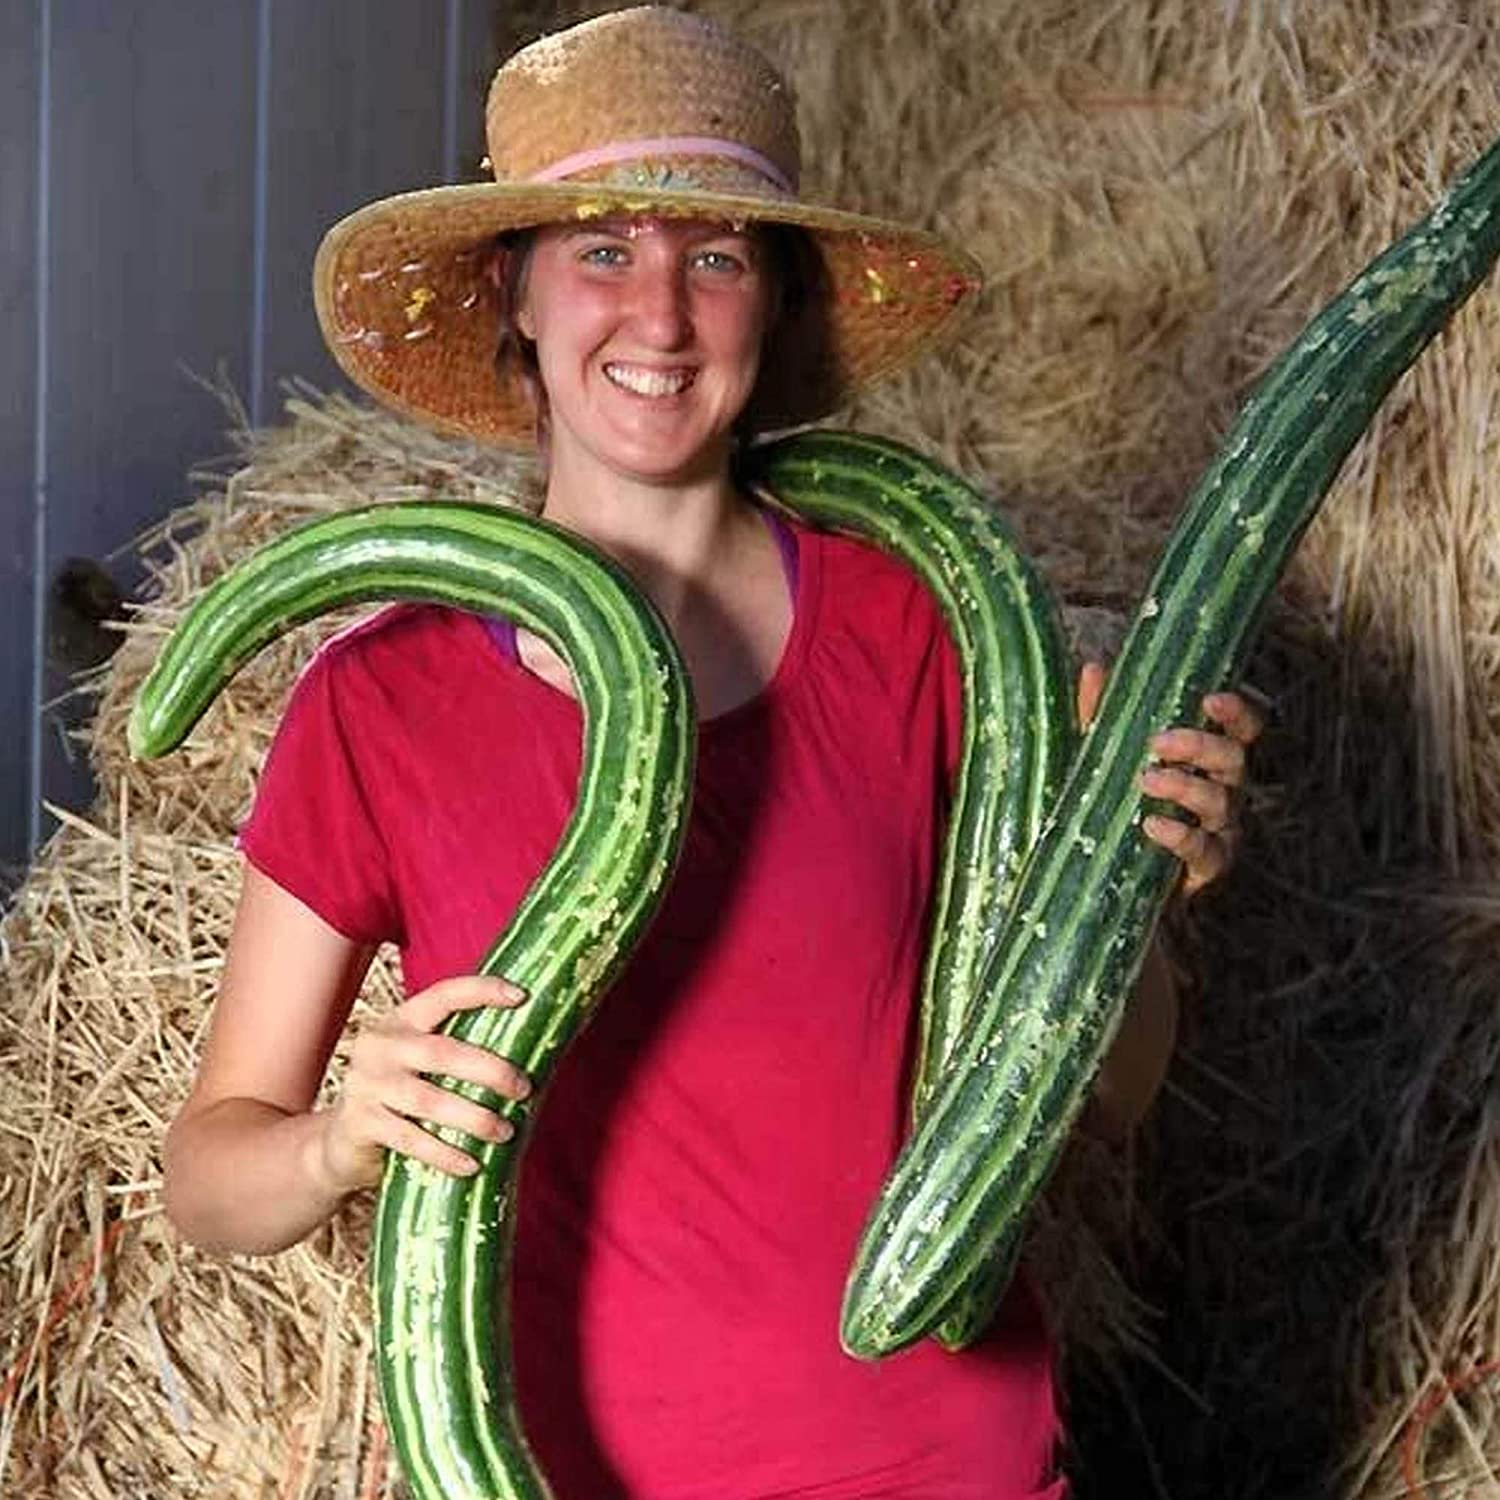 Organic Painted Serpent Cucumber - 1 g ~30 Seeds - Organic, Heirloom, Open Pollinated, Non-GMO, Farm & Vegetable Gardening Seeds